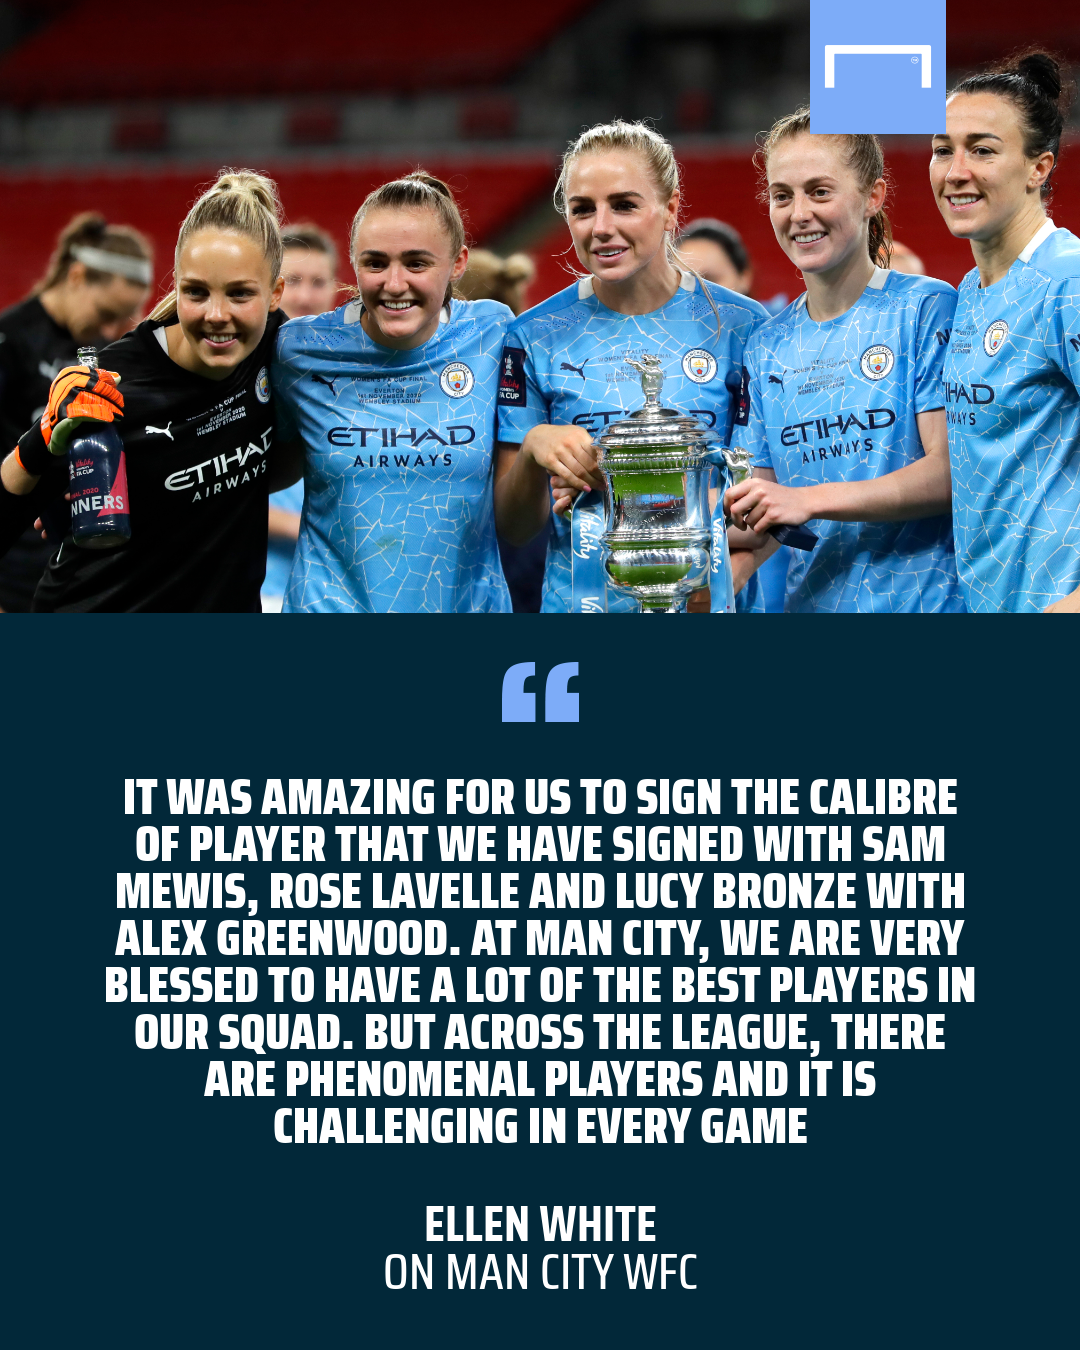 Ellen White: WSL rivalries between Man City, Chelsea, Arsenal & Man Utd are growing fierce